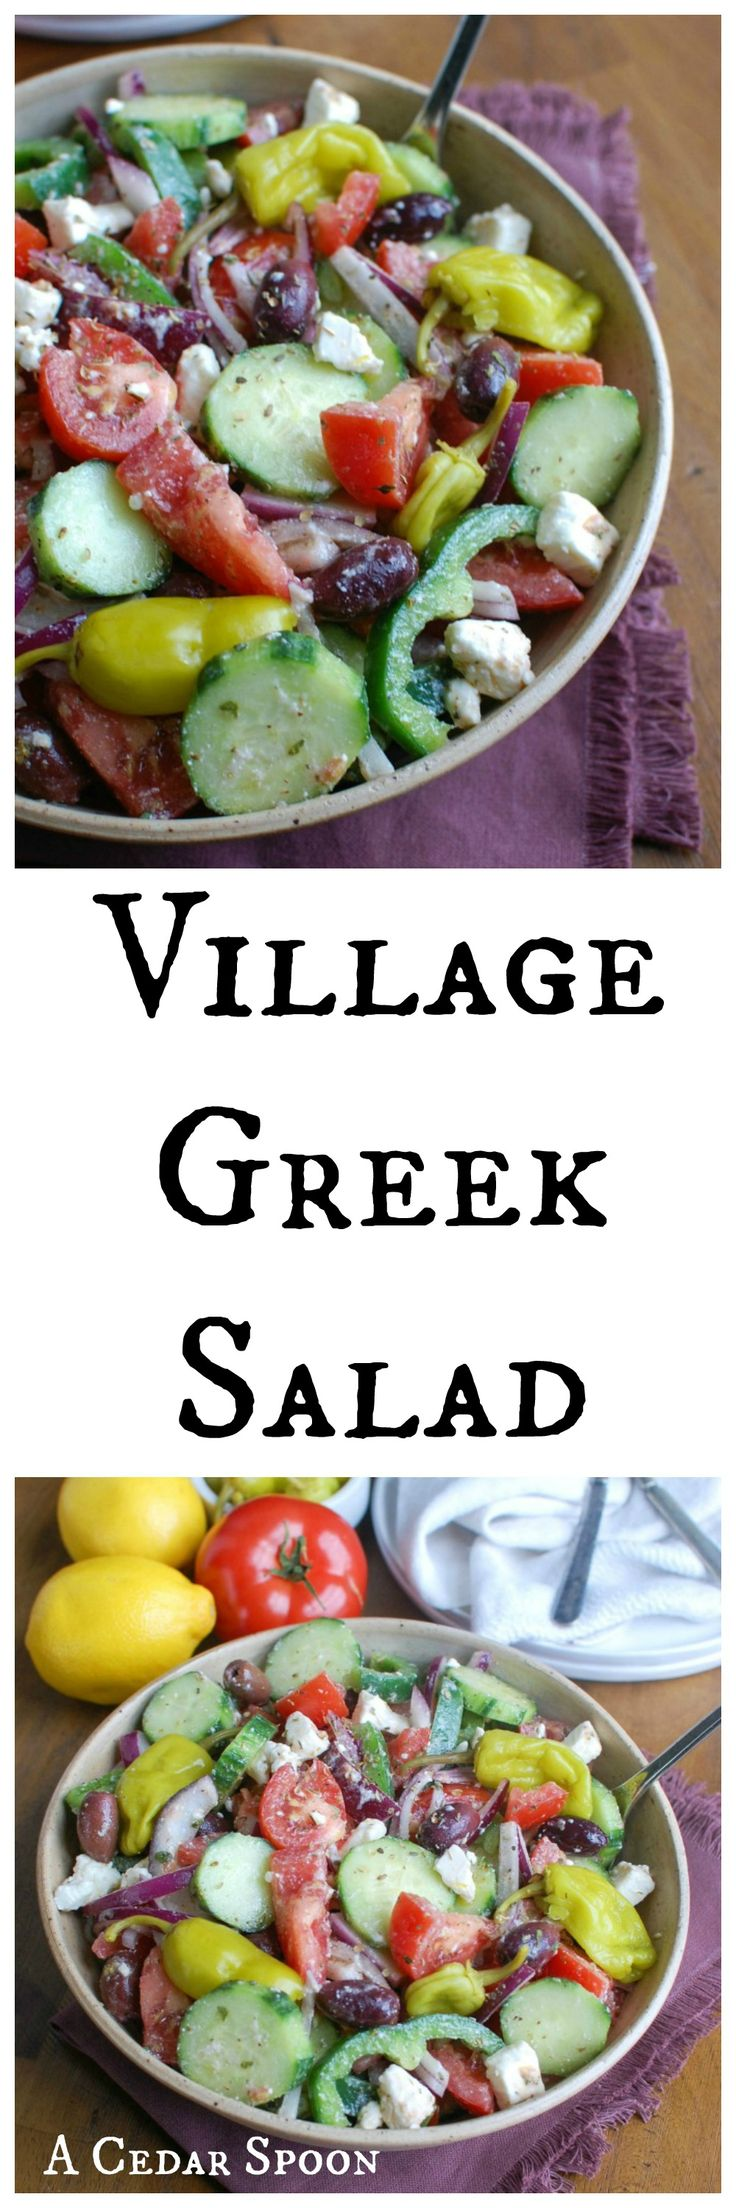 Village Greek Salad - so good.  (No tomatoes for me)